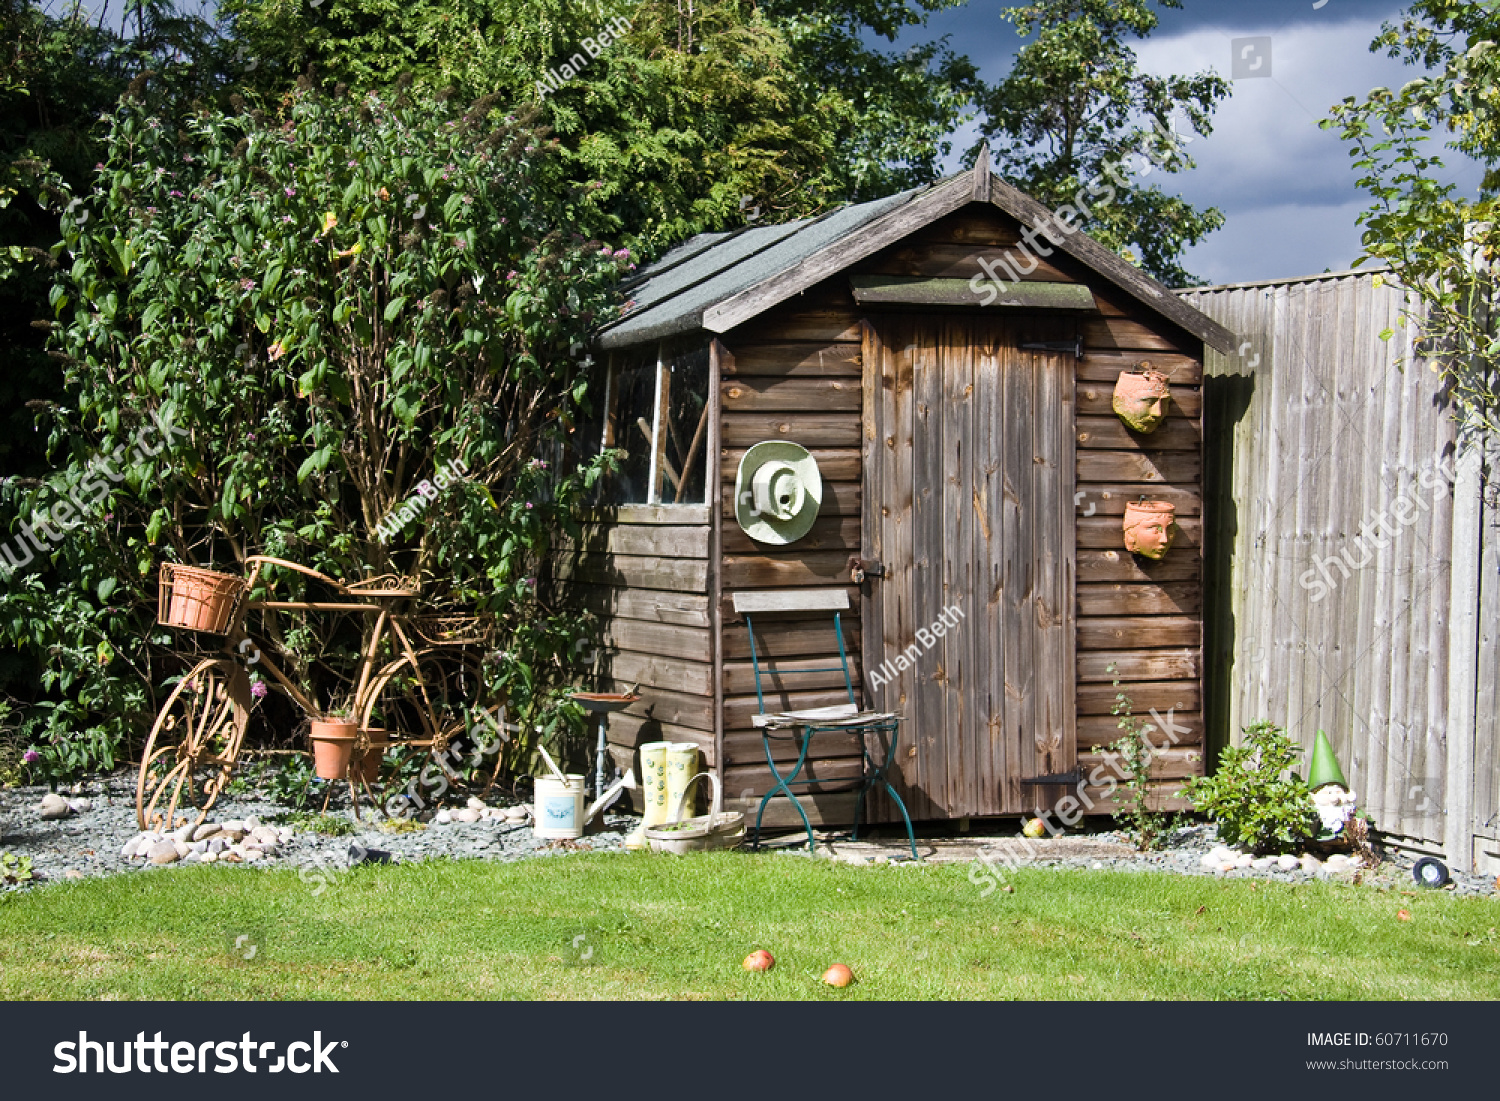 Prepossessing Back Garden Shed Old Metal Bicycle Stock Photo   Shutterstock With Engaging Back Garden Shed With Old Metal Bicycle With Enchanting Plants For A Small Garden Also Uk Garden Sheds In Addition Garden Trellises And Rubens The Garden Of Love As Well As Garden Post Holders Additionally Garden Cafe Guildford From Shutterstockcom With   Engaging Back Garden Shed Old Metal Bicycle Stock Photo   Shutterstock With Enchanting Back Garden Shed With Old Metal Bicycle And Prepossessing Plants For A Small Garden Also Uk Garden Sheds In Addition Garden Trellises From Shutterstockcom